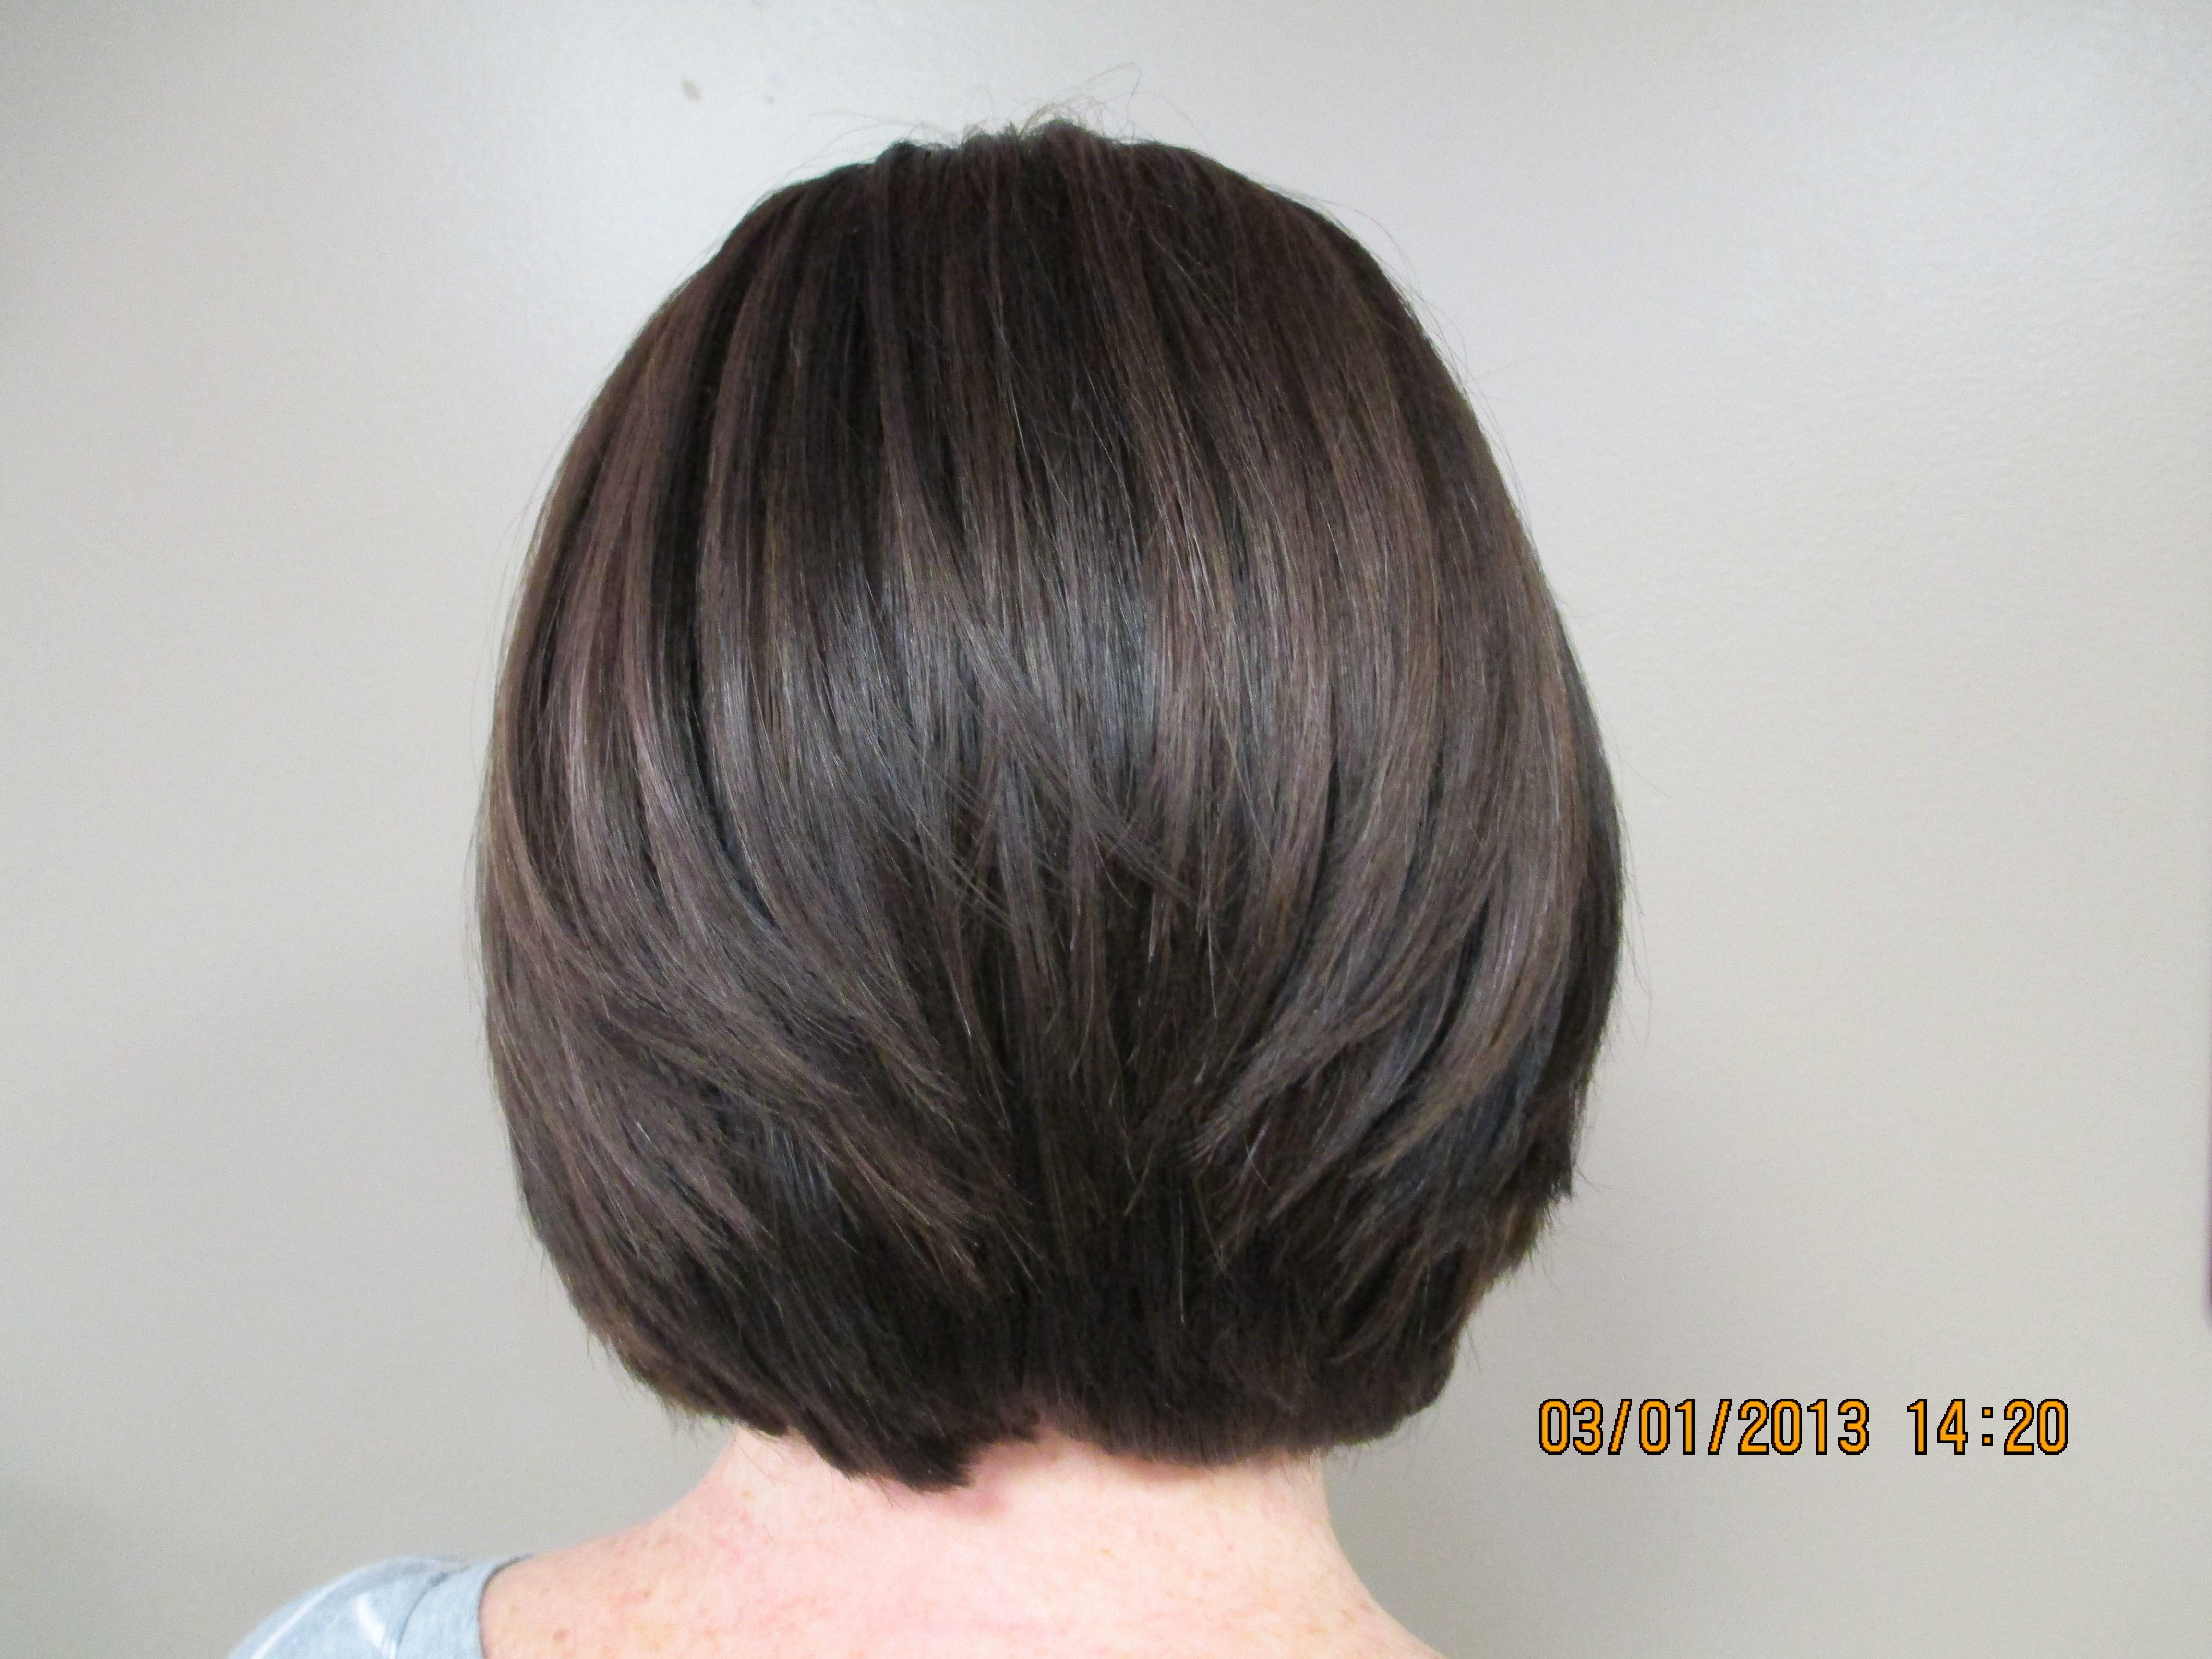 Short Graduated Bob With Spikes | hairstylegalleries.com